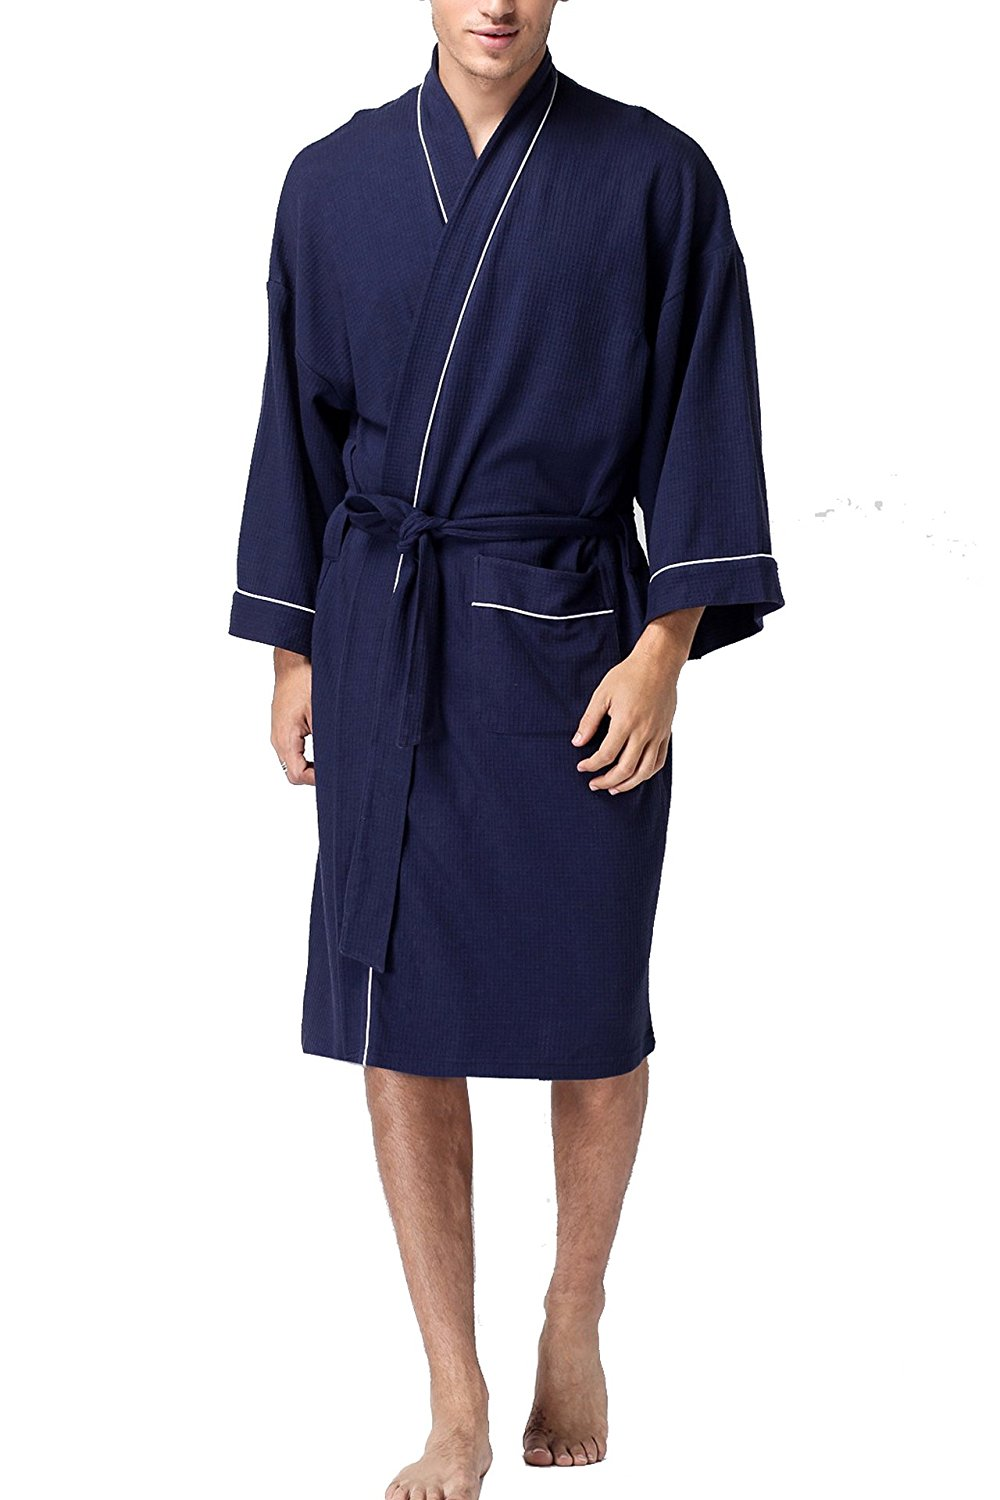 b6eb9c925a Get Quotations · Hotel   Spa Robe